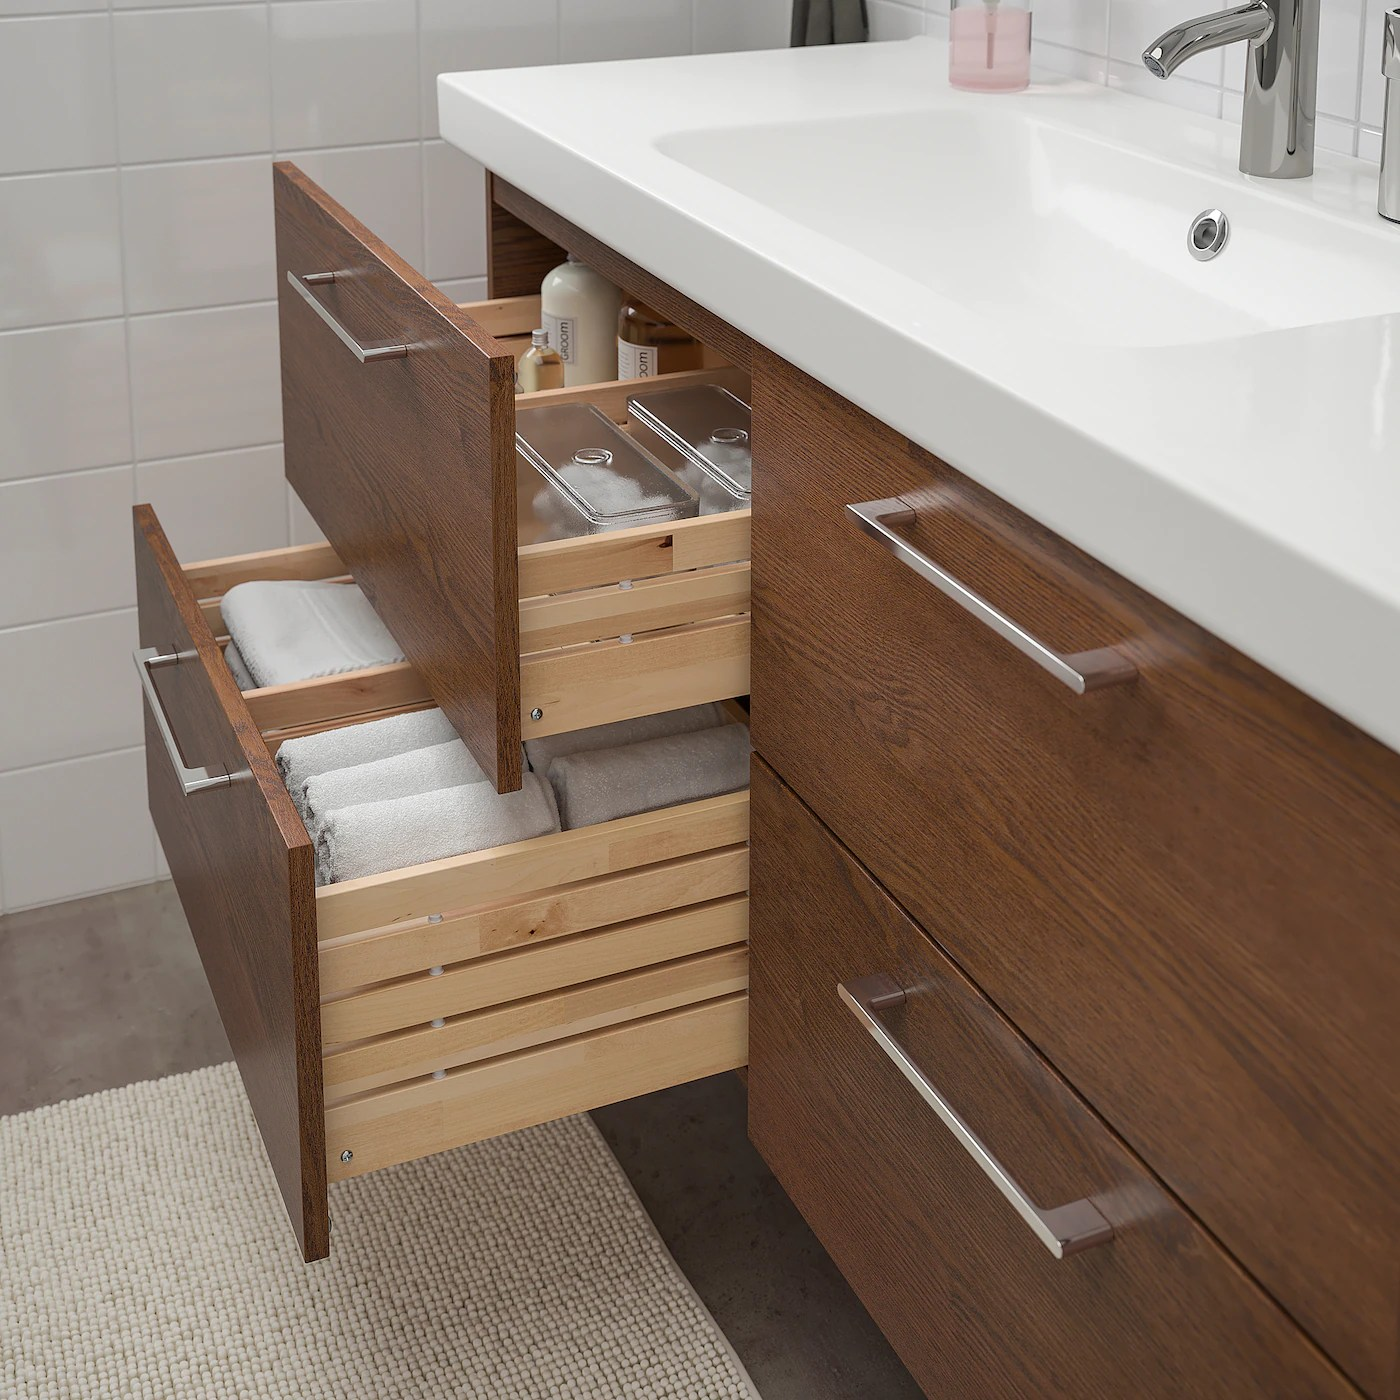 godmorgon odensvik sink cabinet with 4 drawers brown stained ash effect dalskar faucet 48 3 8x19 1 4x25 1 4